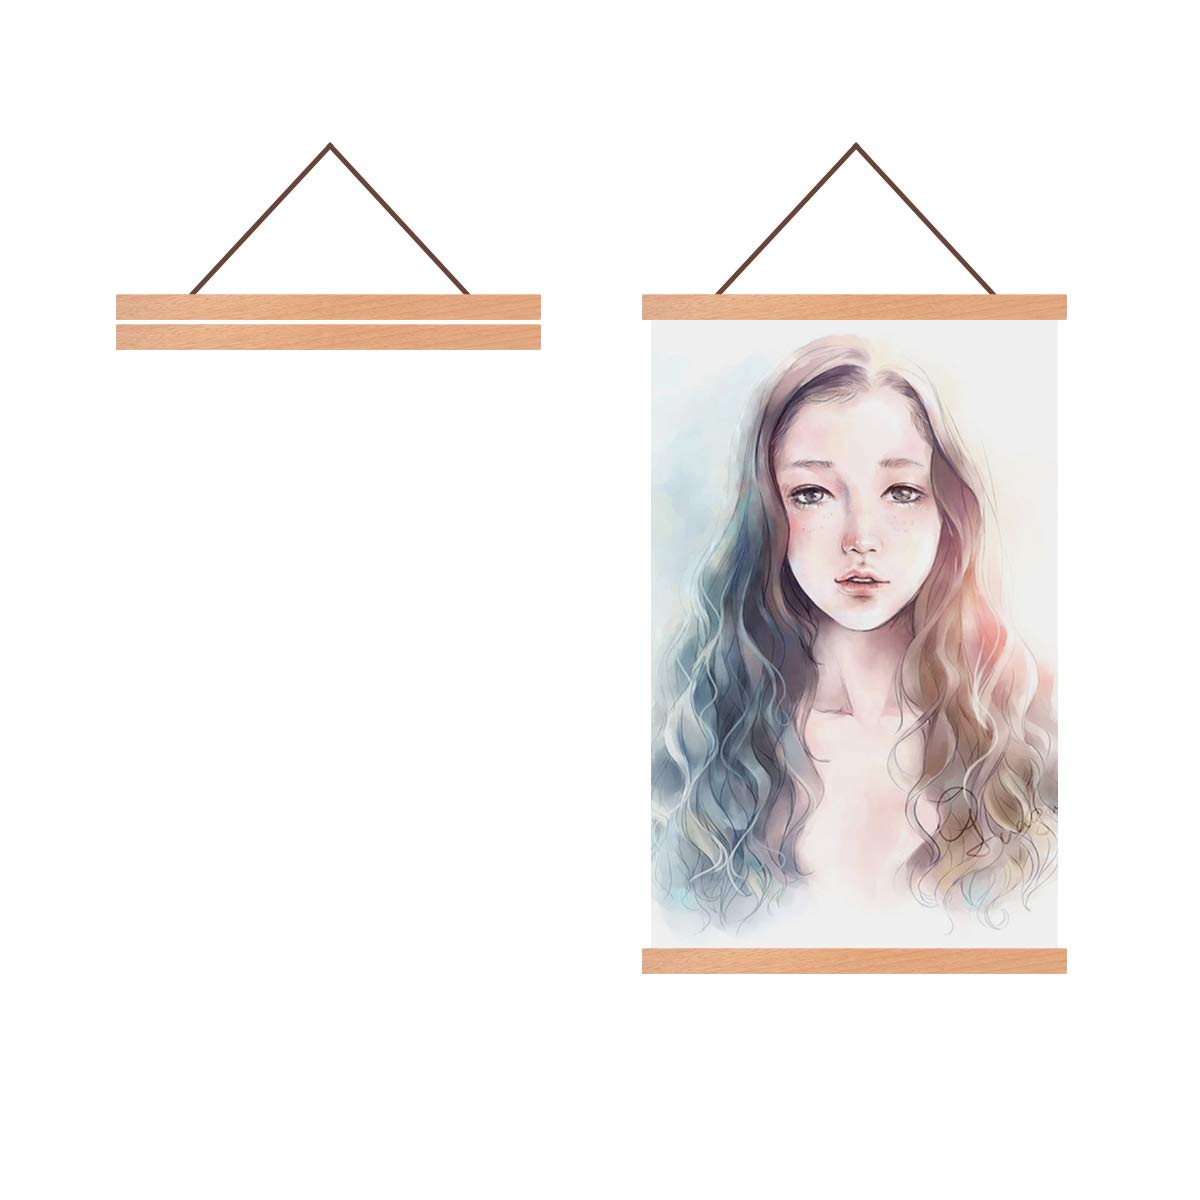 Radezon 12x16 12x18 11x17 Poster Frame, Magnetic Poster Frame Hanger for Photo Picture Canvas Artwork Wall Hanging (12 inch x 2 Pack)